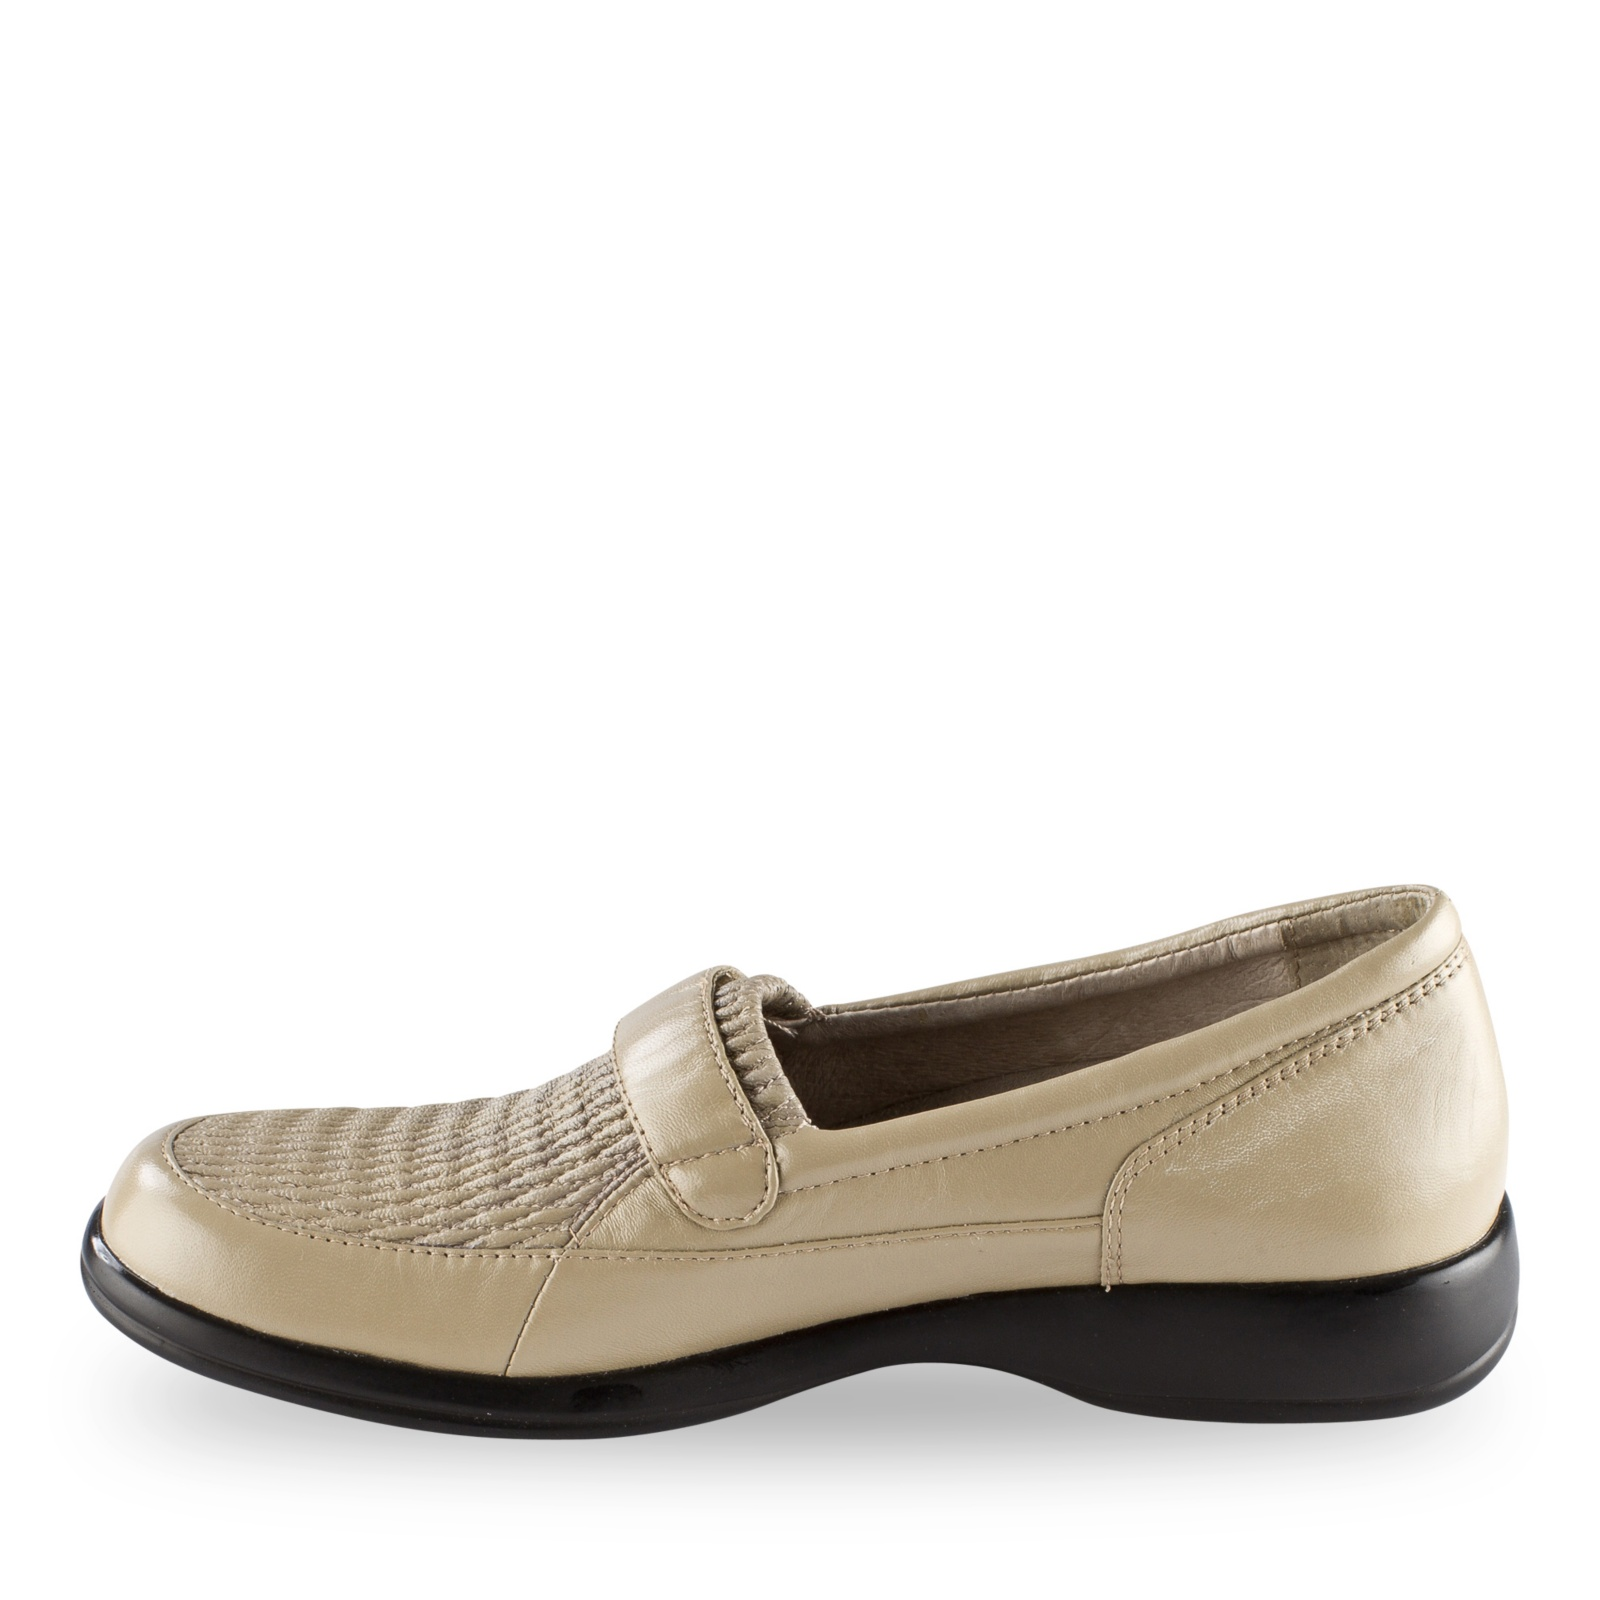 footsmart s stretchable loafer shoes ebay